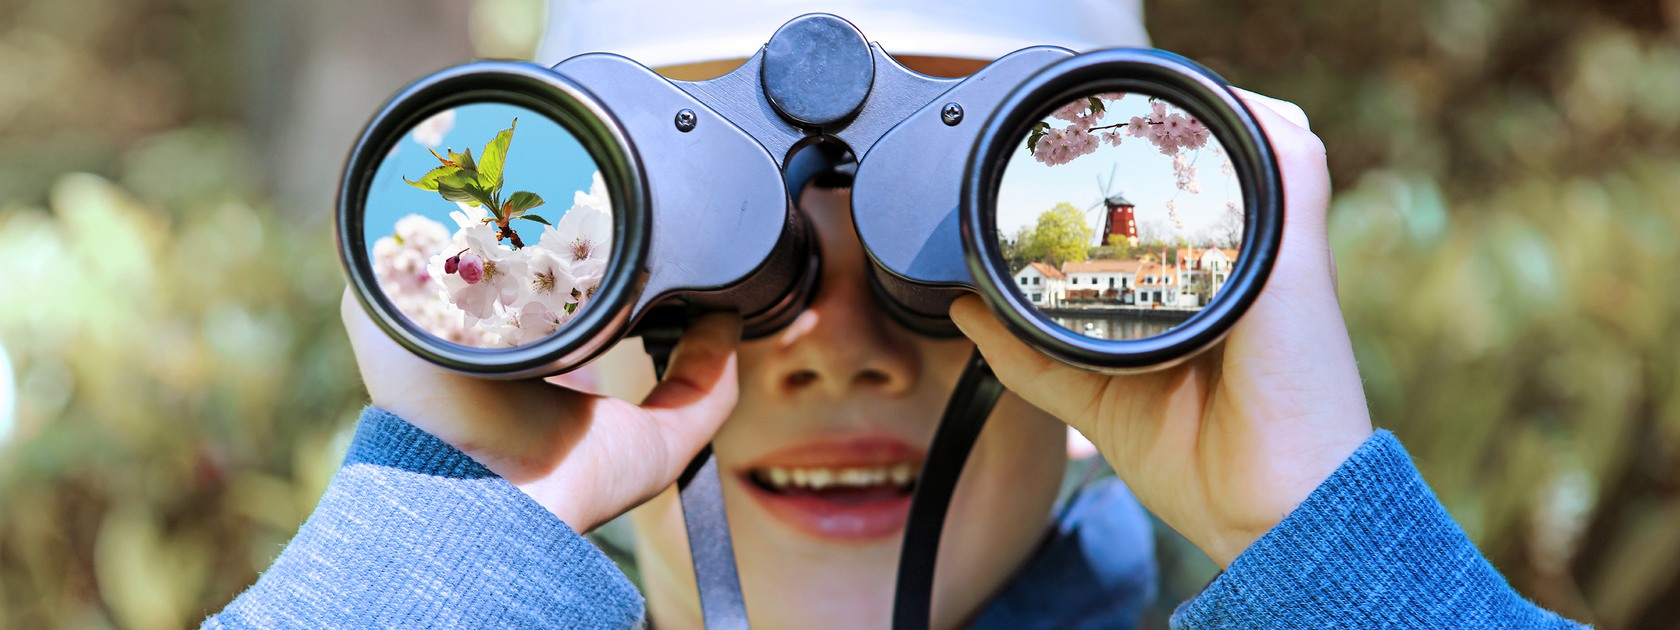 This is a close-up portrait image of a little child who is looking through big binoculars towards the camera. The boy is here seen outdoors in summer and he is wearing a pith helmet and holding binoculars straight towards the camera in such a way that his face is almsot completely covered.